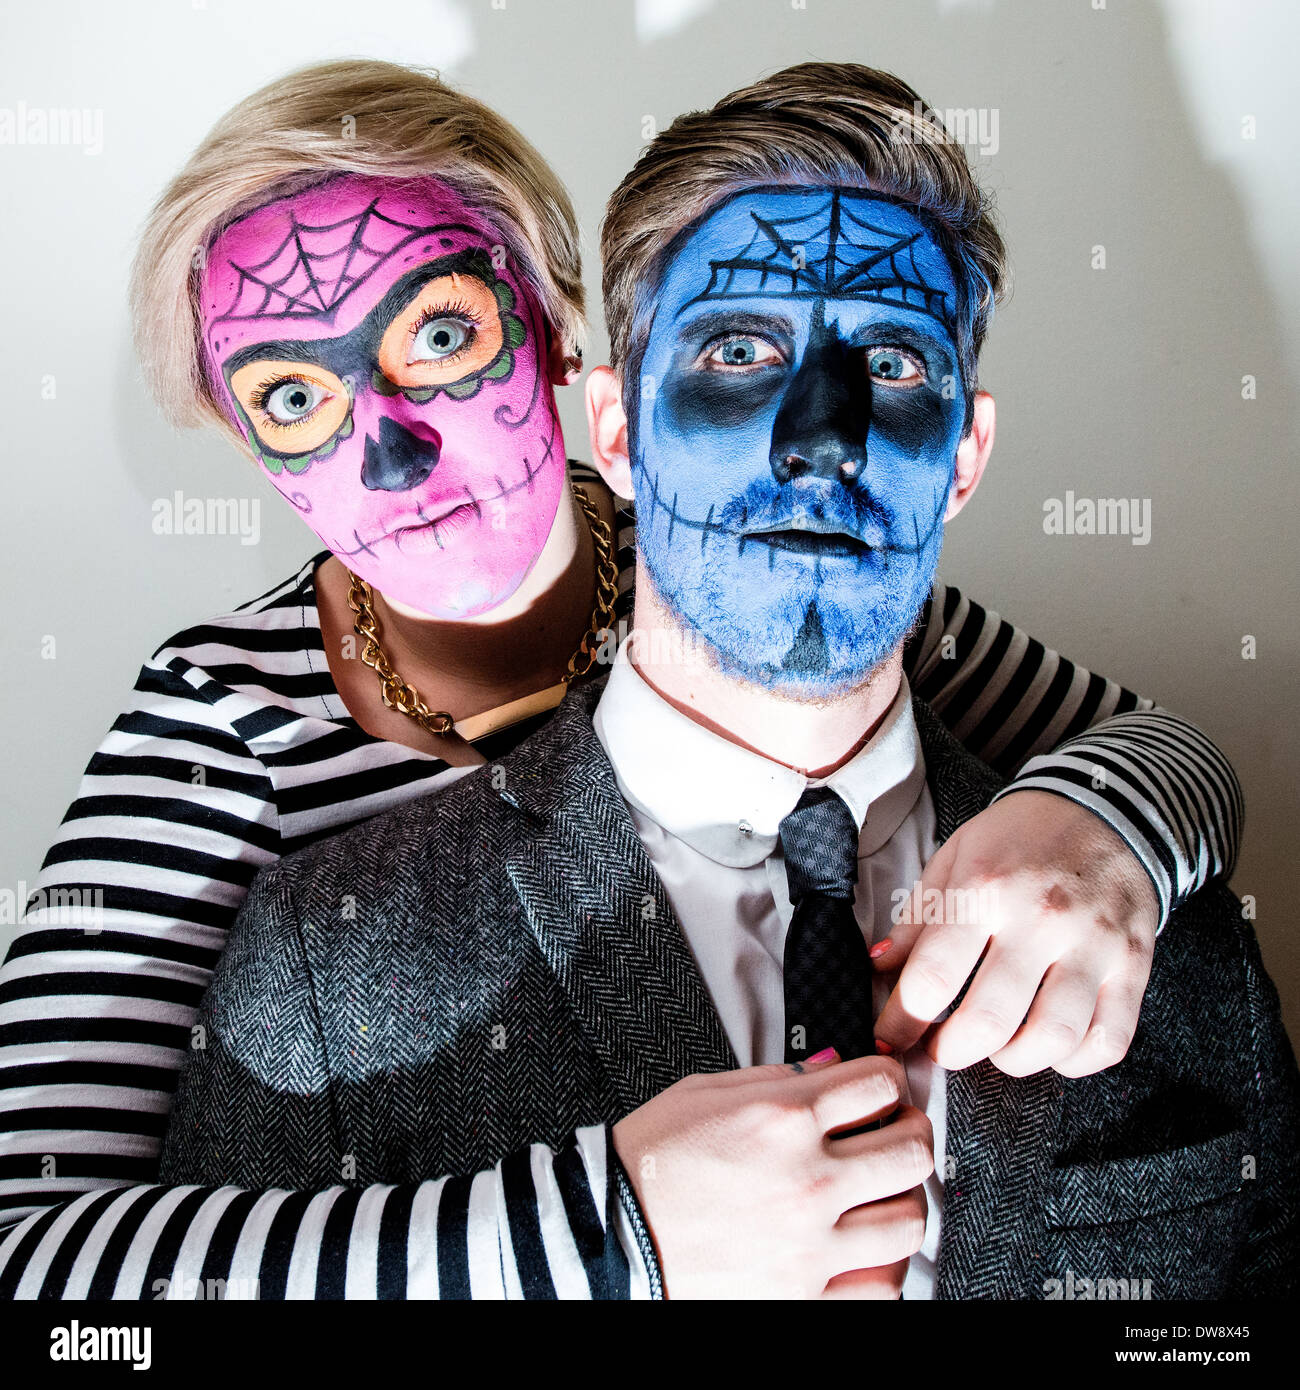 Paint On Hands And Face High Resolution Stock Photography And Images Alamy